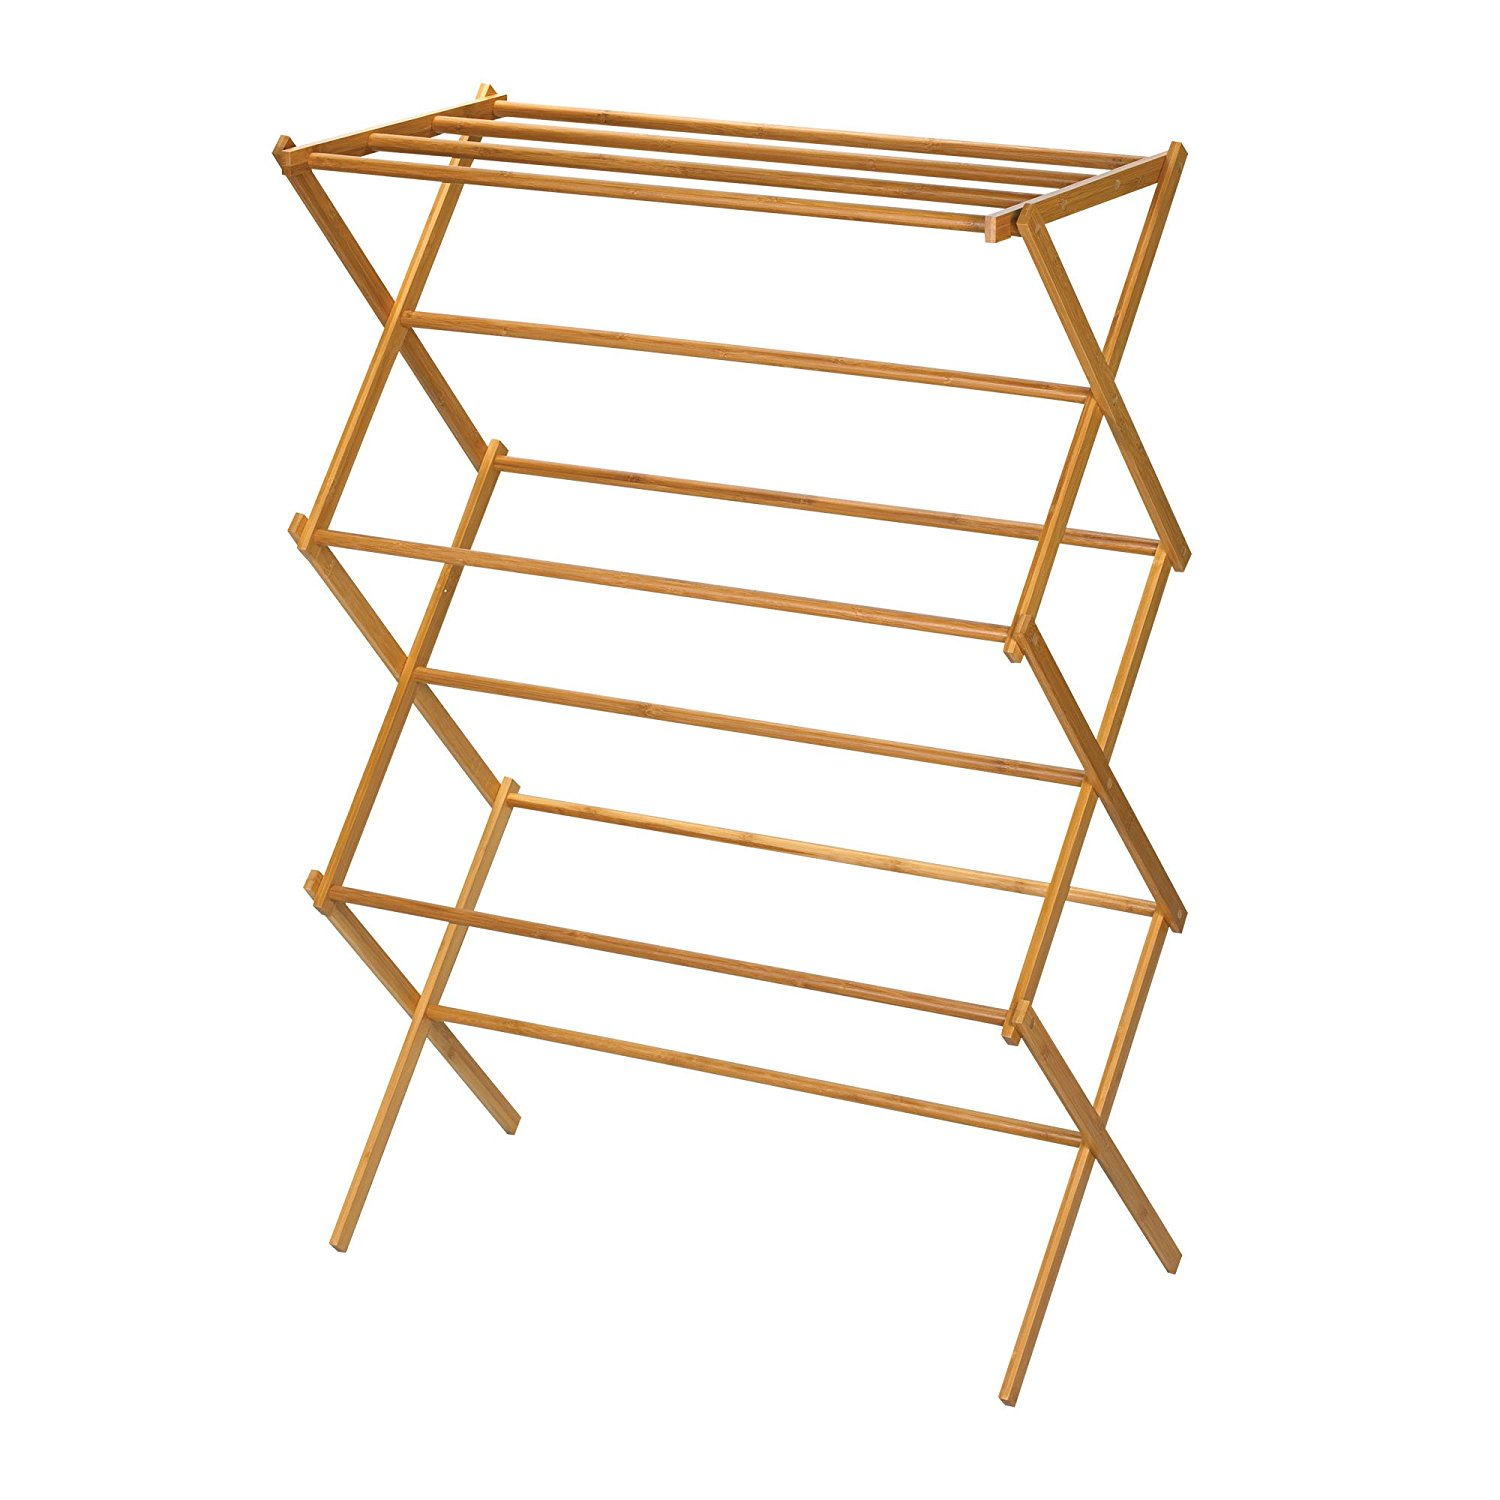 Bamboo Foldable Cloth Hanger Rack Clothes Rack Hanger For Wholesale Price